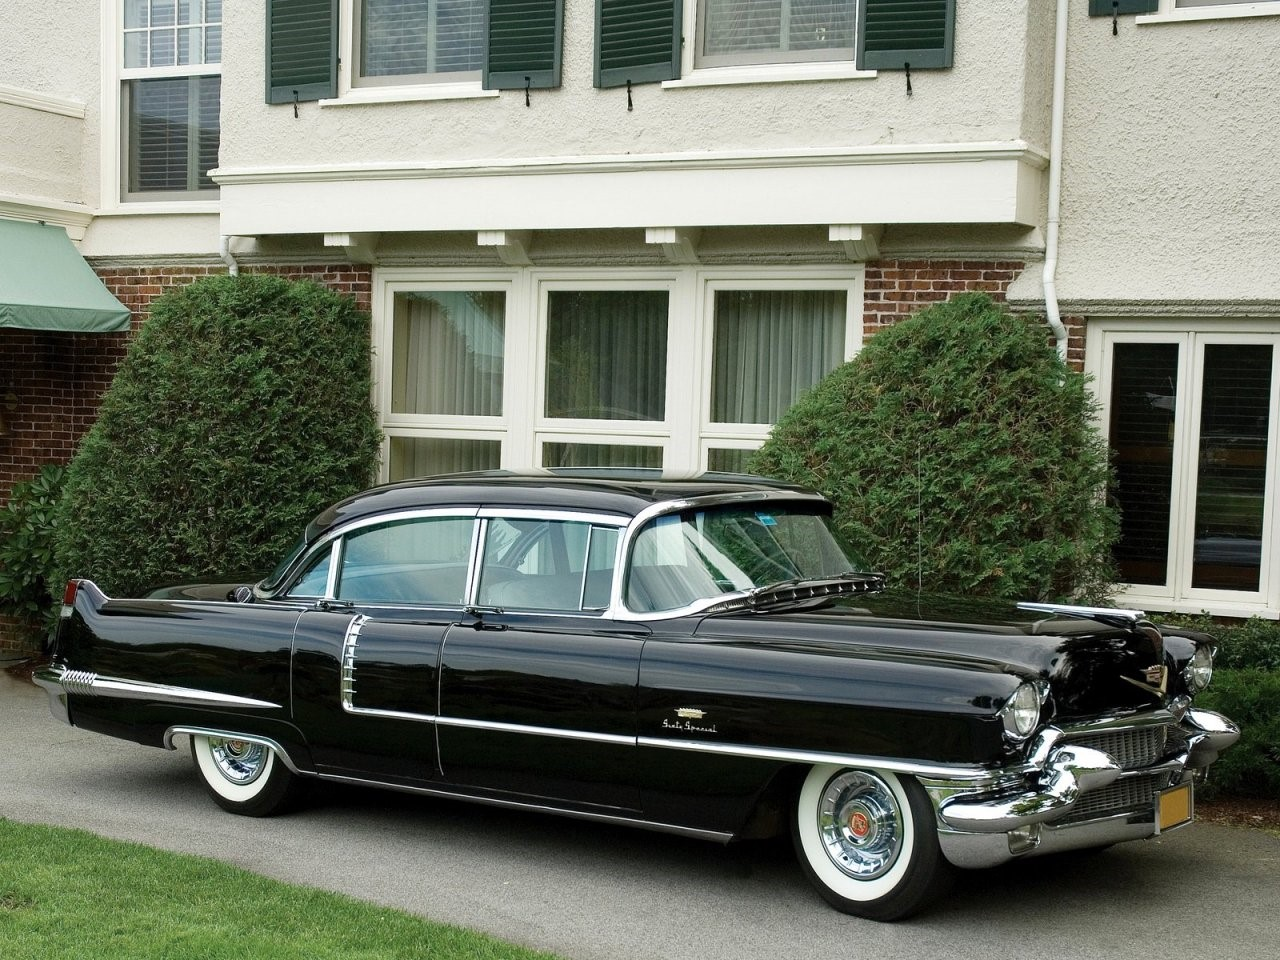 1956 Cadillac Series 62 Coupe deVille: A Clic Standard for the ...